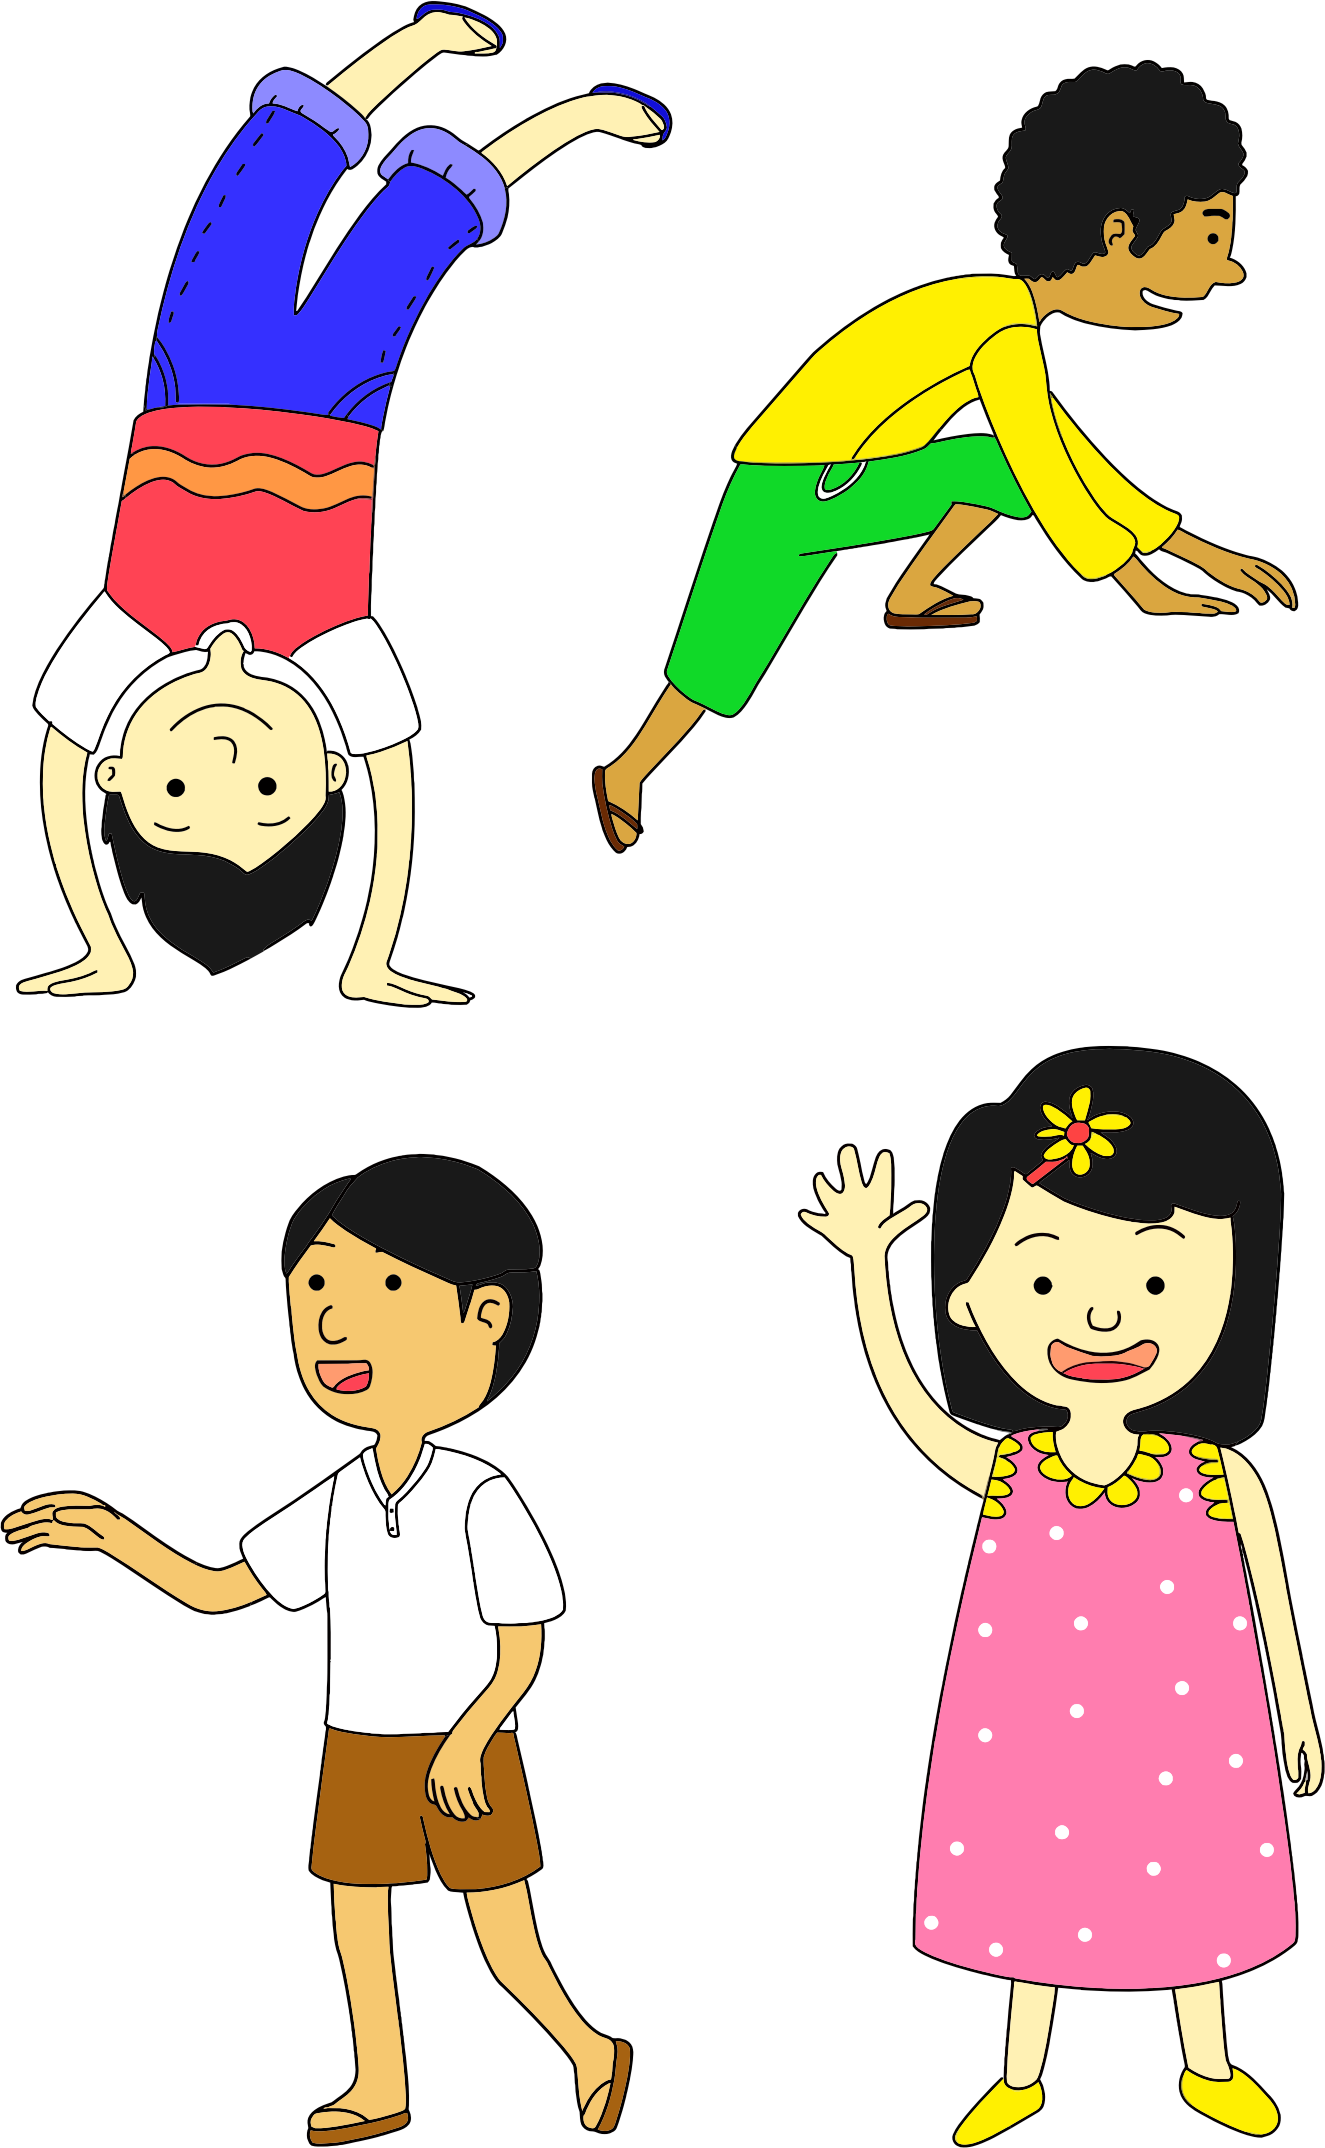 Multicultural Kids by GDJ